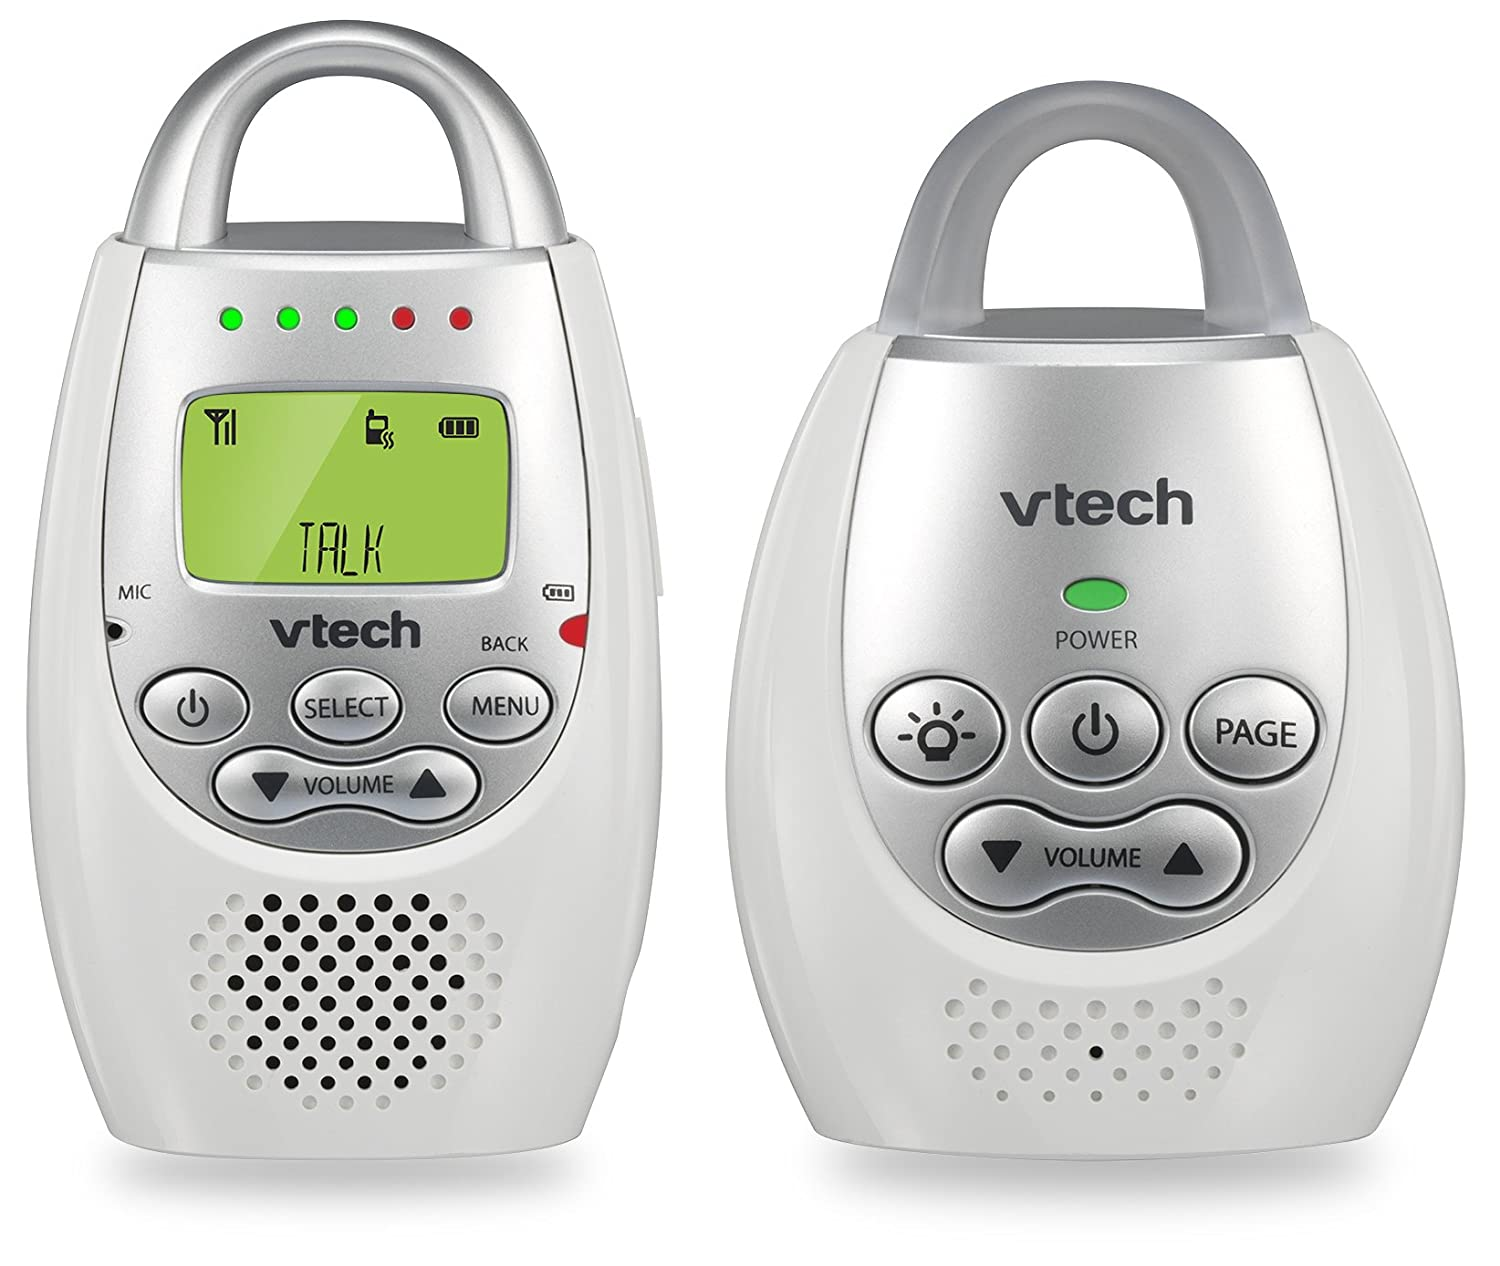 VTech BA72211GY Gray Audio Baby Monitor with up to 1,000 ft of Range, Vibrating Sound-Alert, Talk Back Intercom Night Light Loop